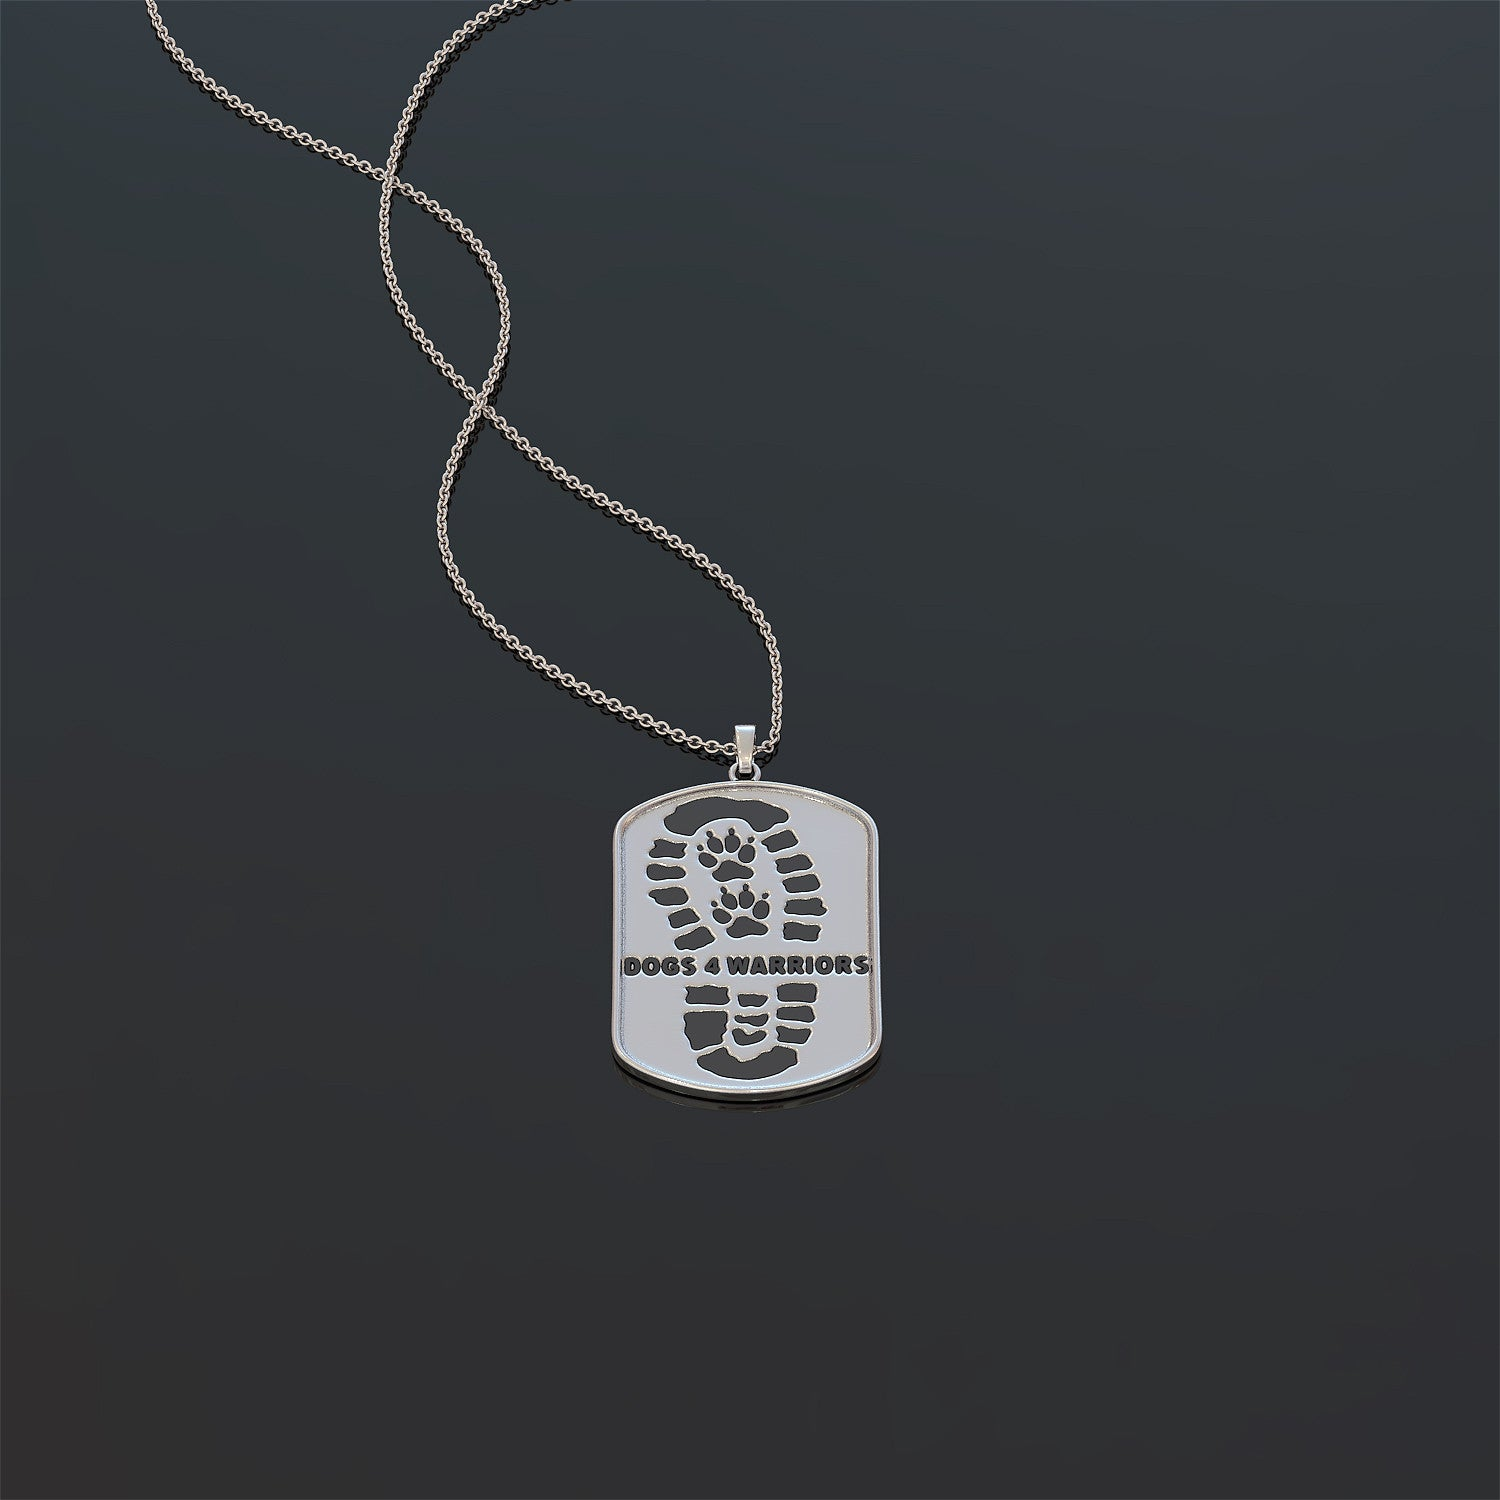 Dogs 4 Warriors Necklace